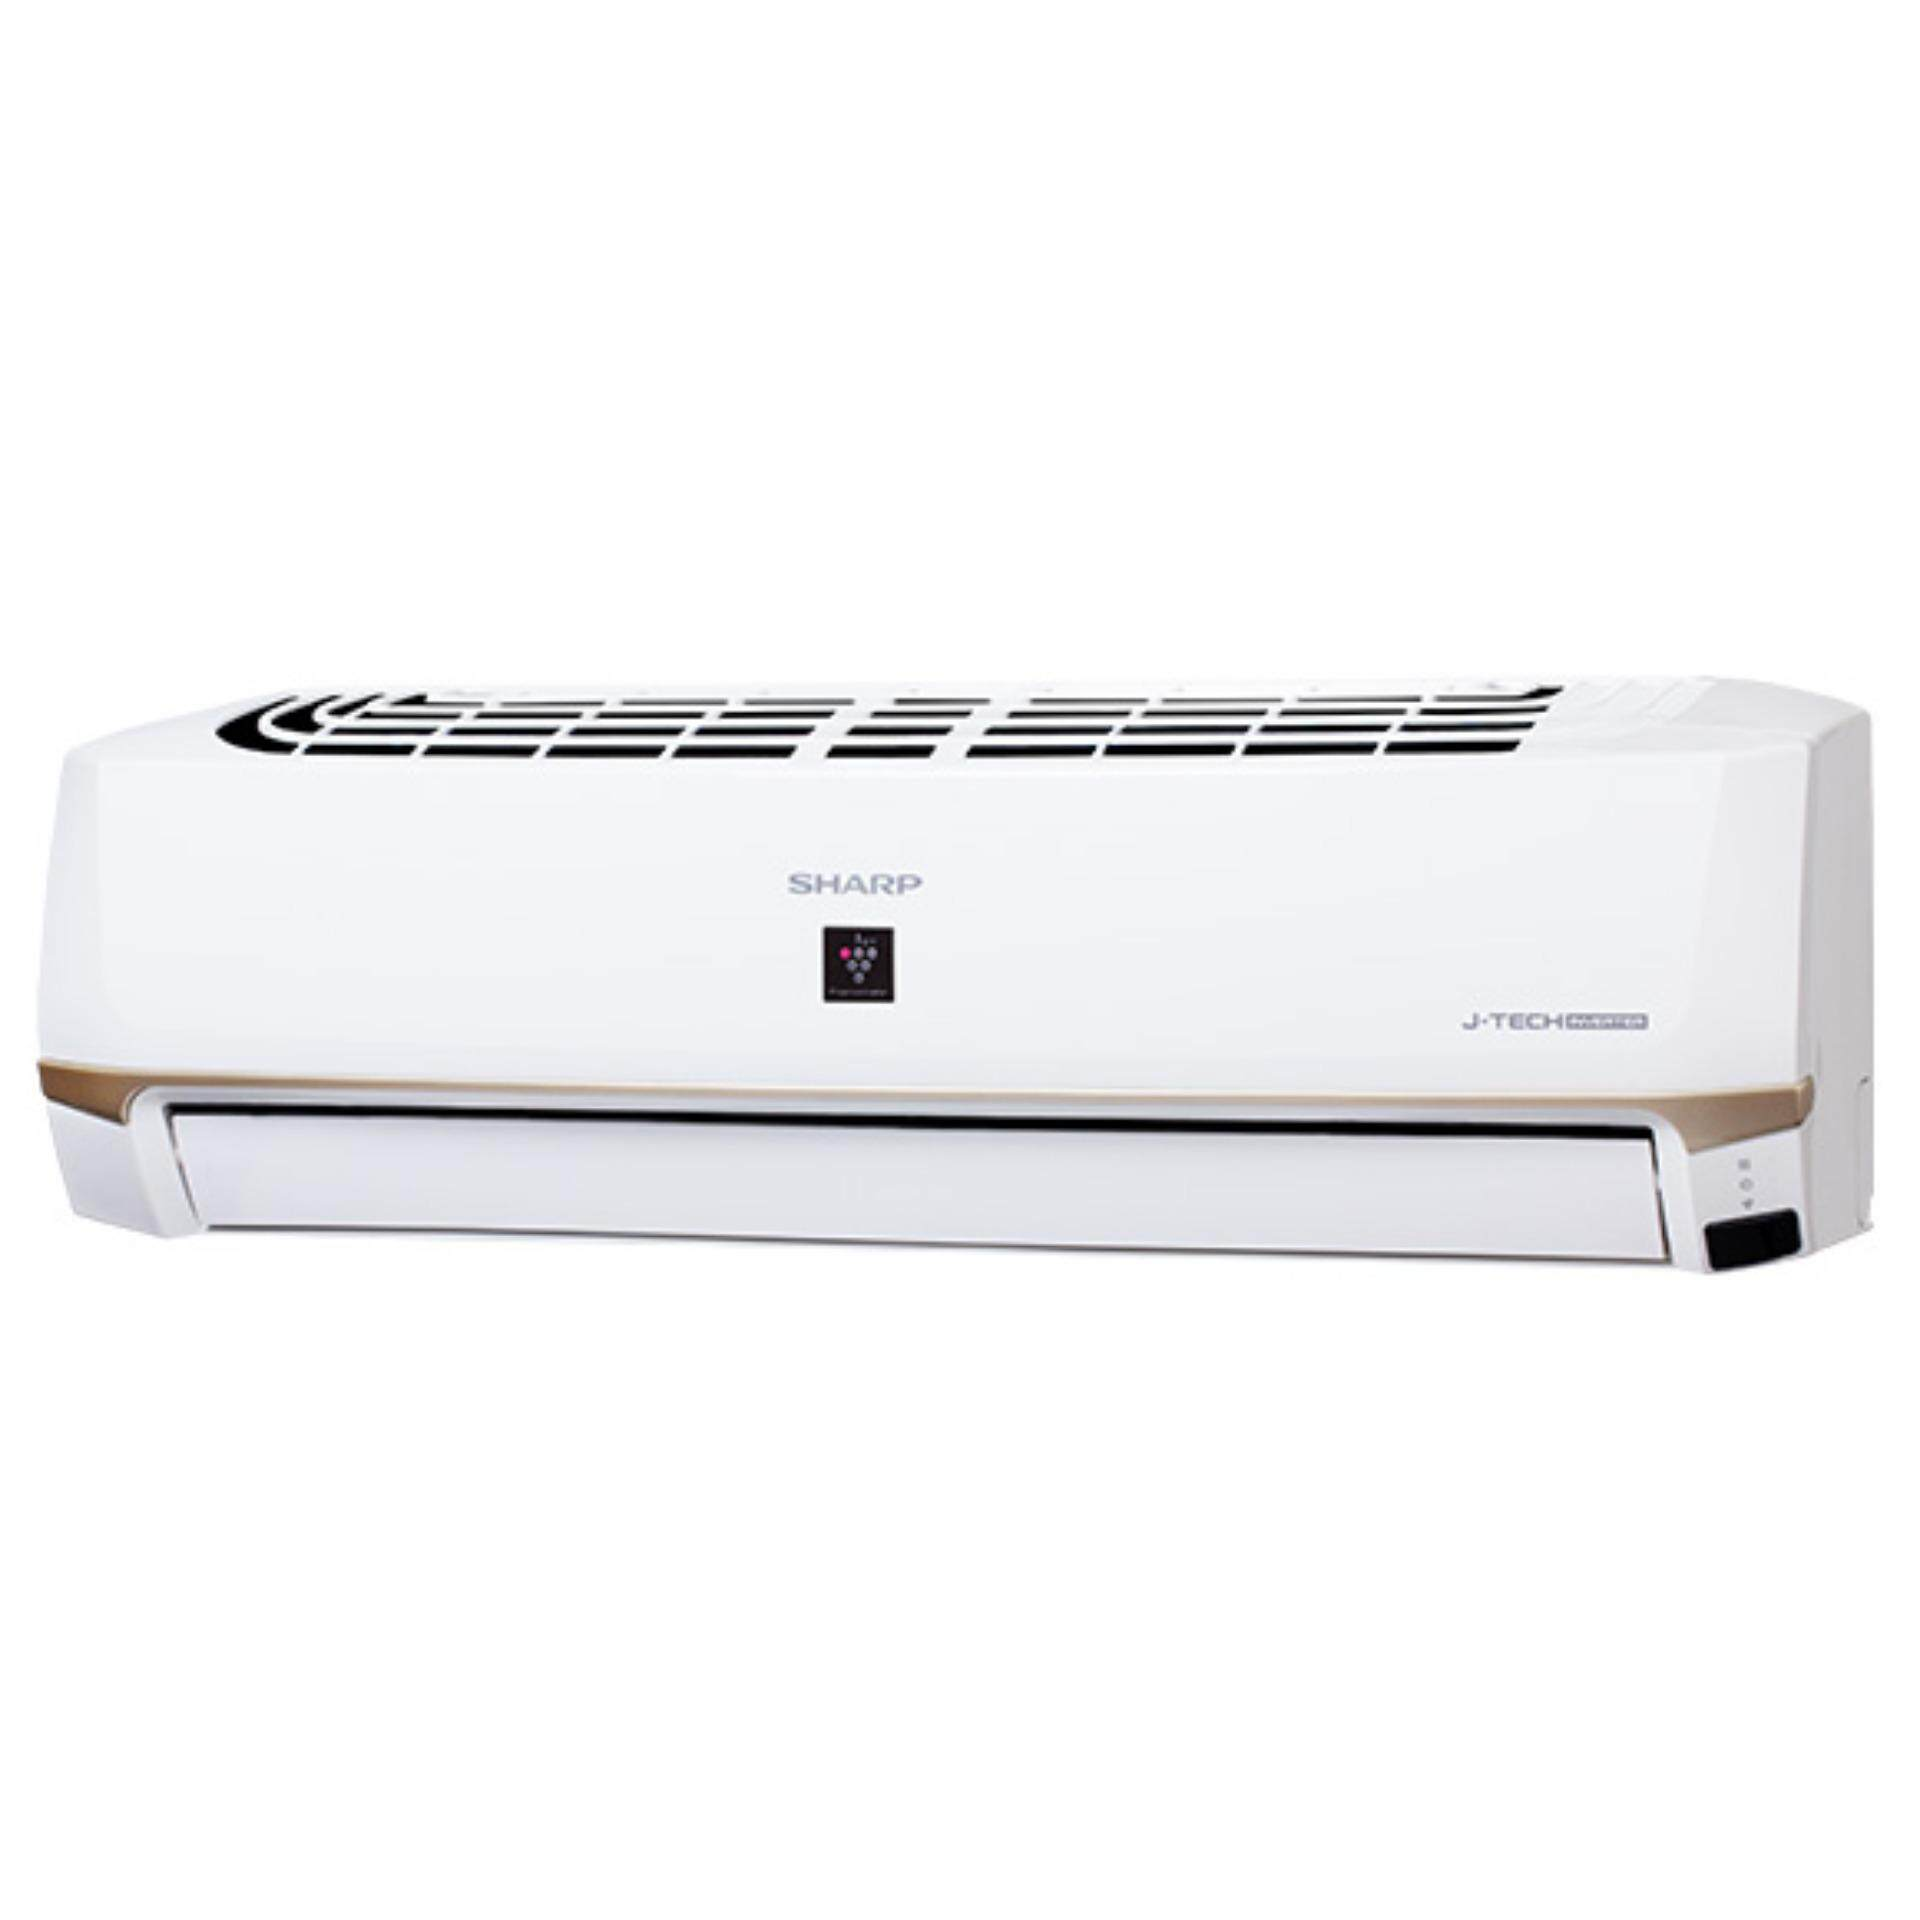 SHARP 1.5HP Basic Turbo Cooling Model Air Cond AUX13UHD